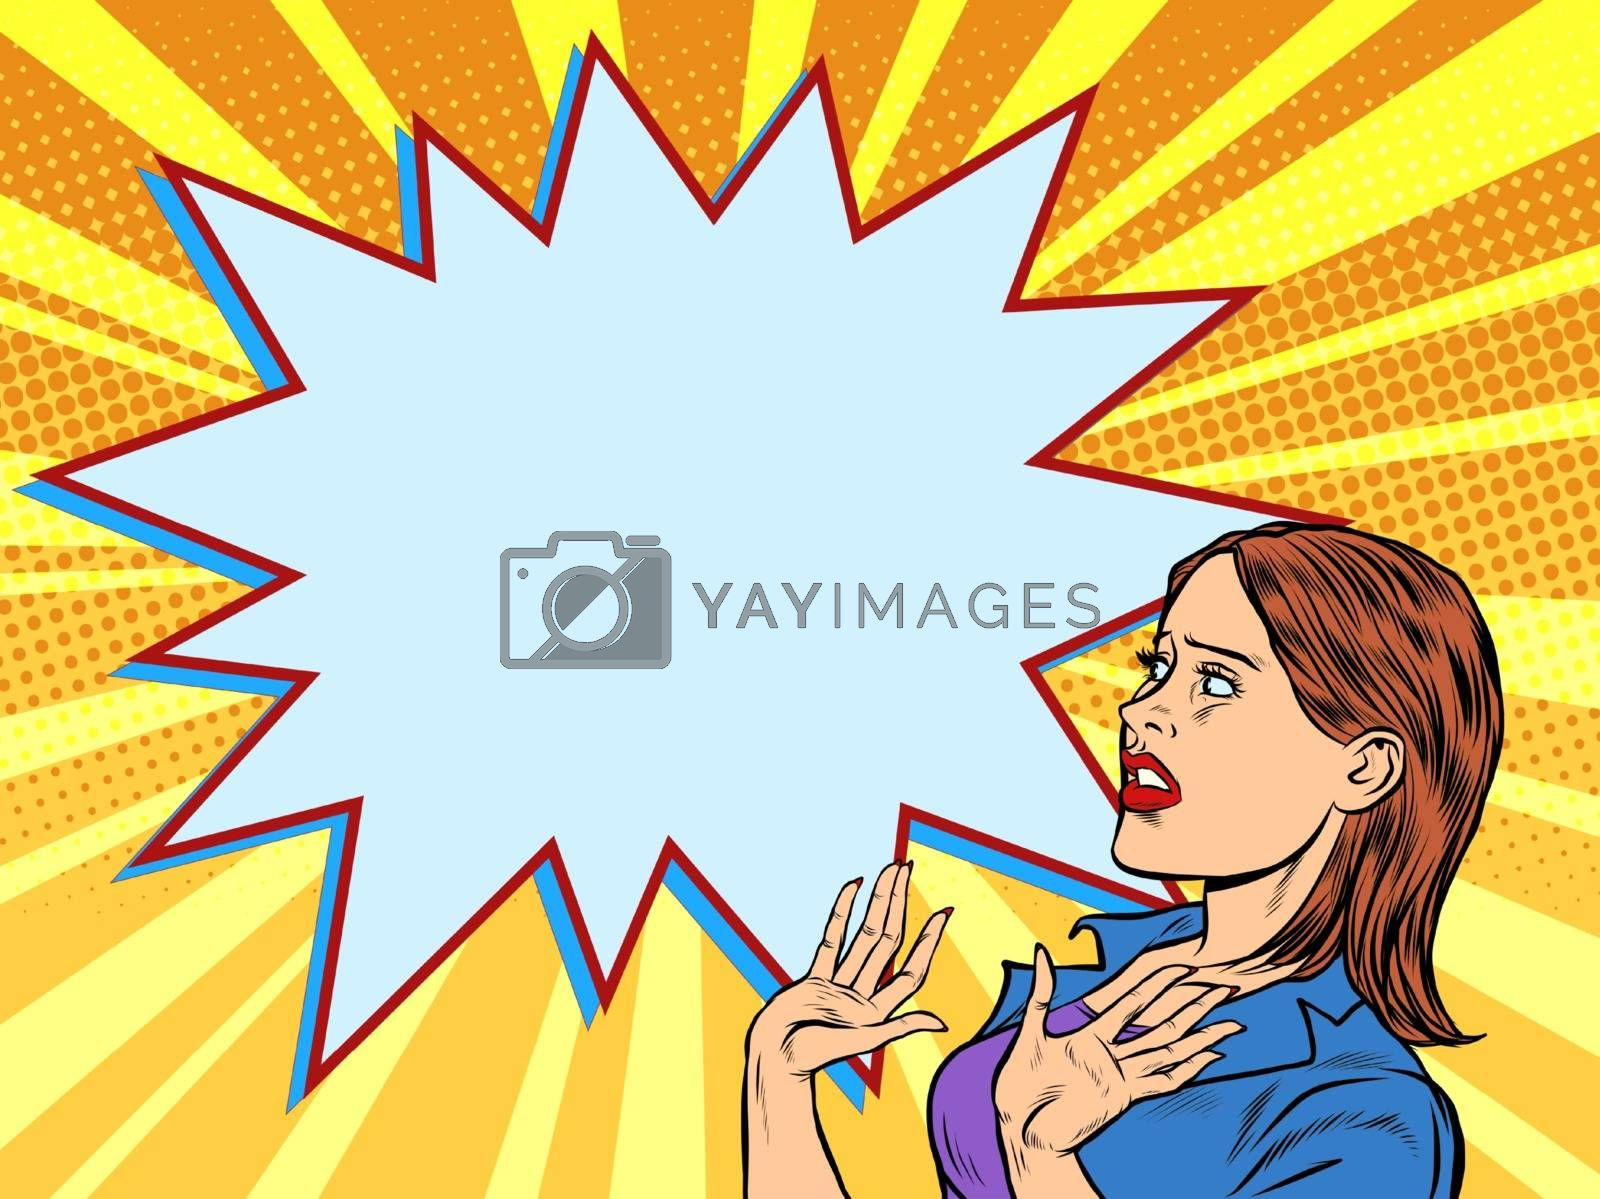 Woman scared emotions reaction. Pop art retro vector illustration vintage kitsch 50s 60s style